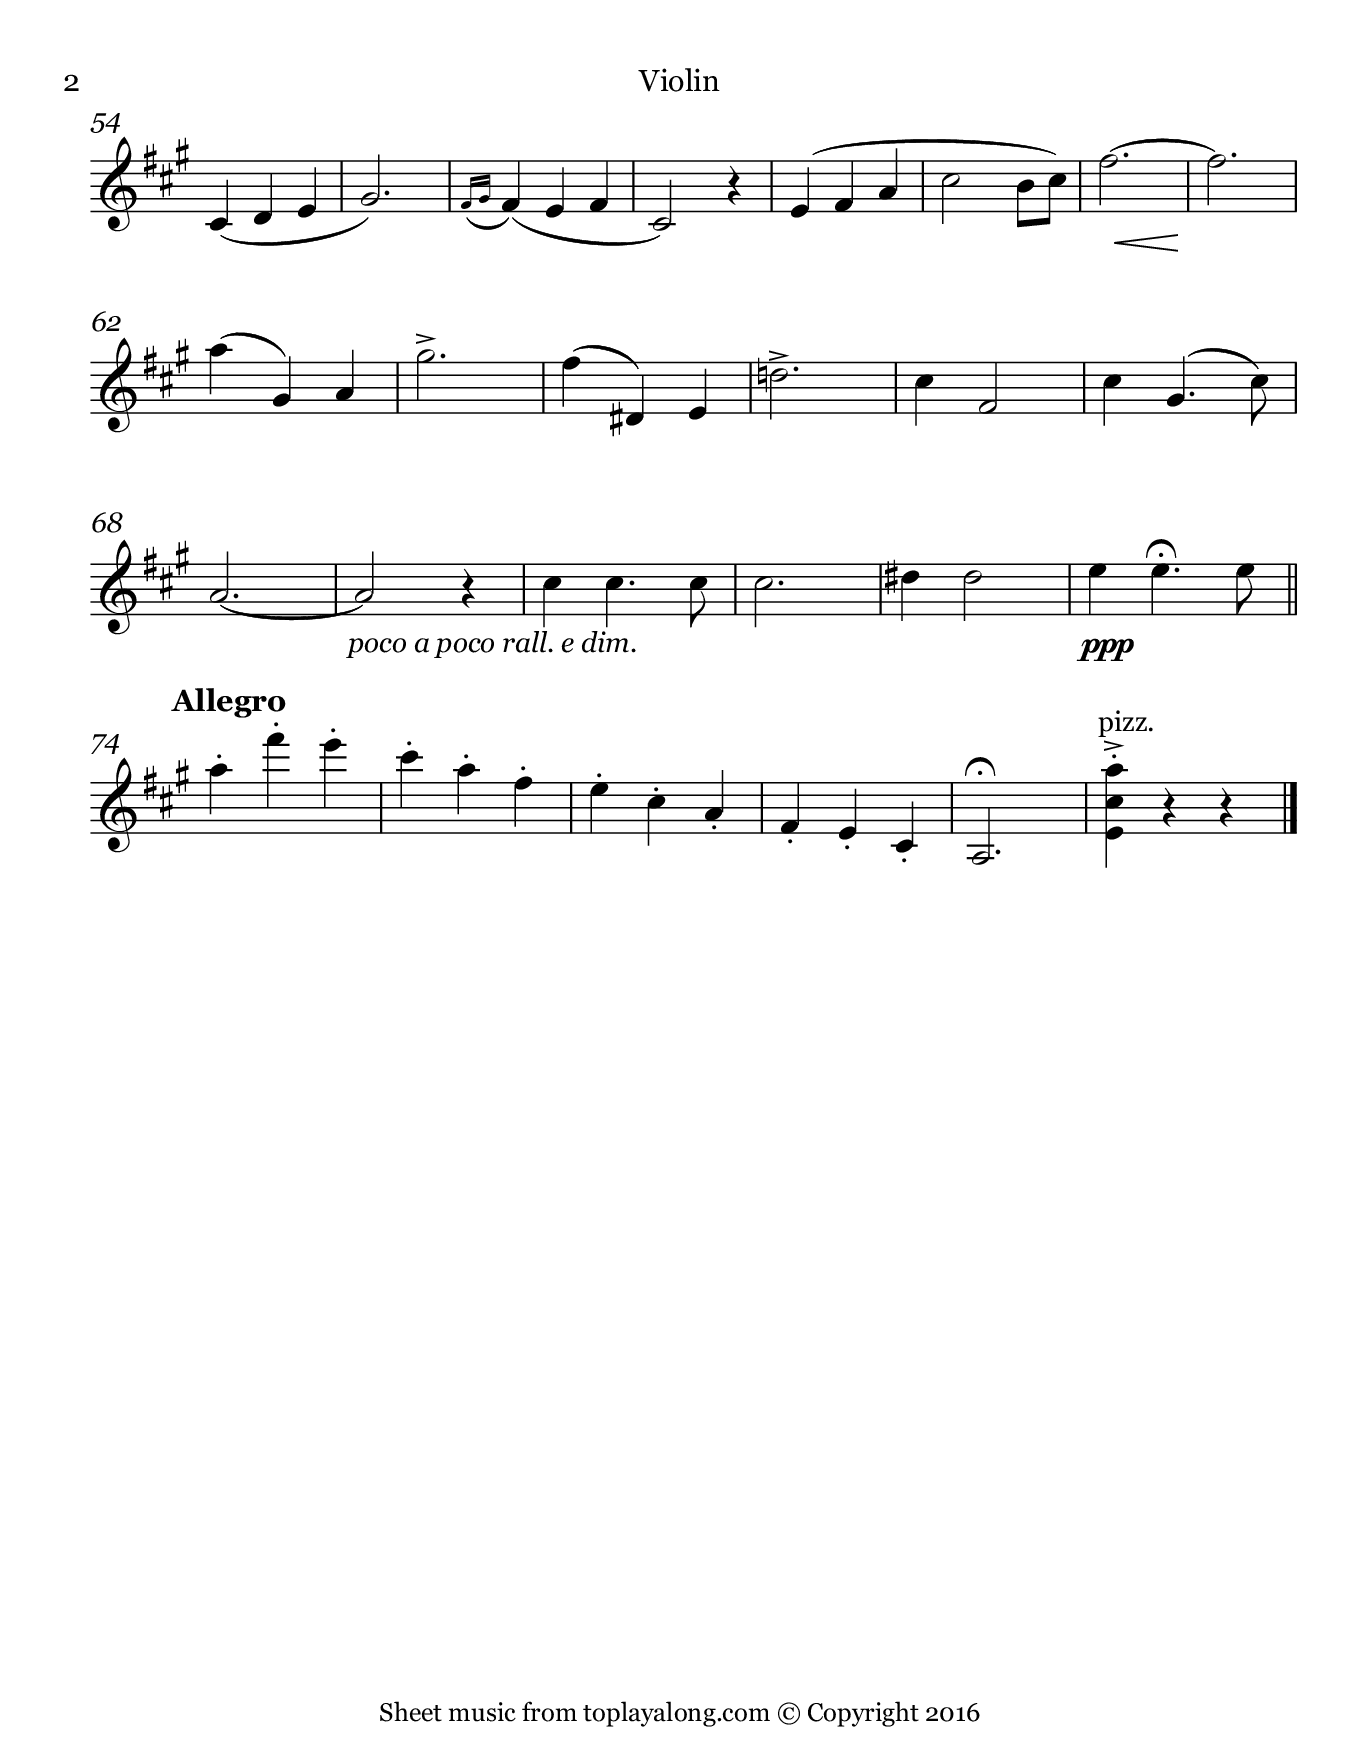 Kiss Me Again from Mlle. Modiste by Herbert. Sheet music for Violin, page 2.